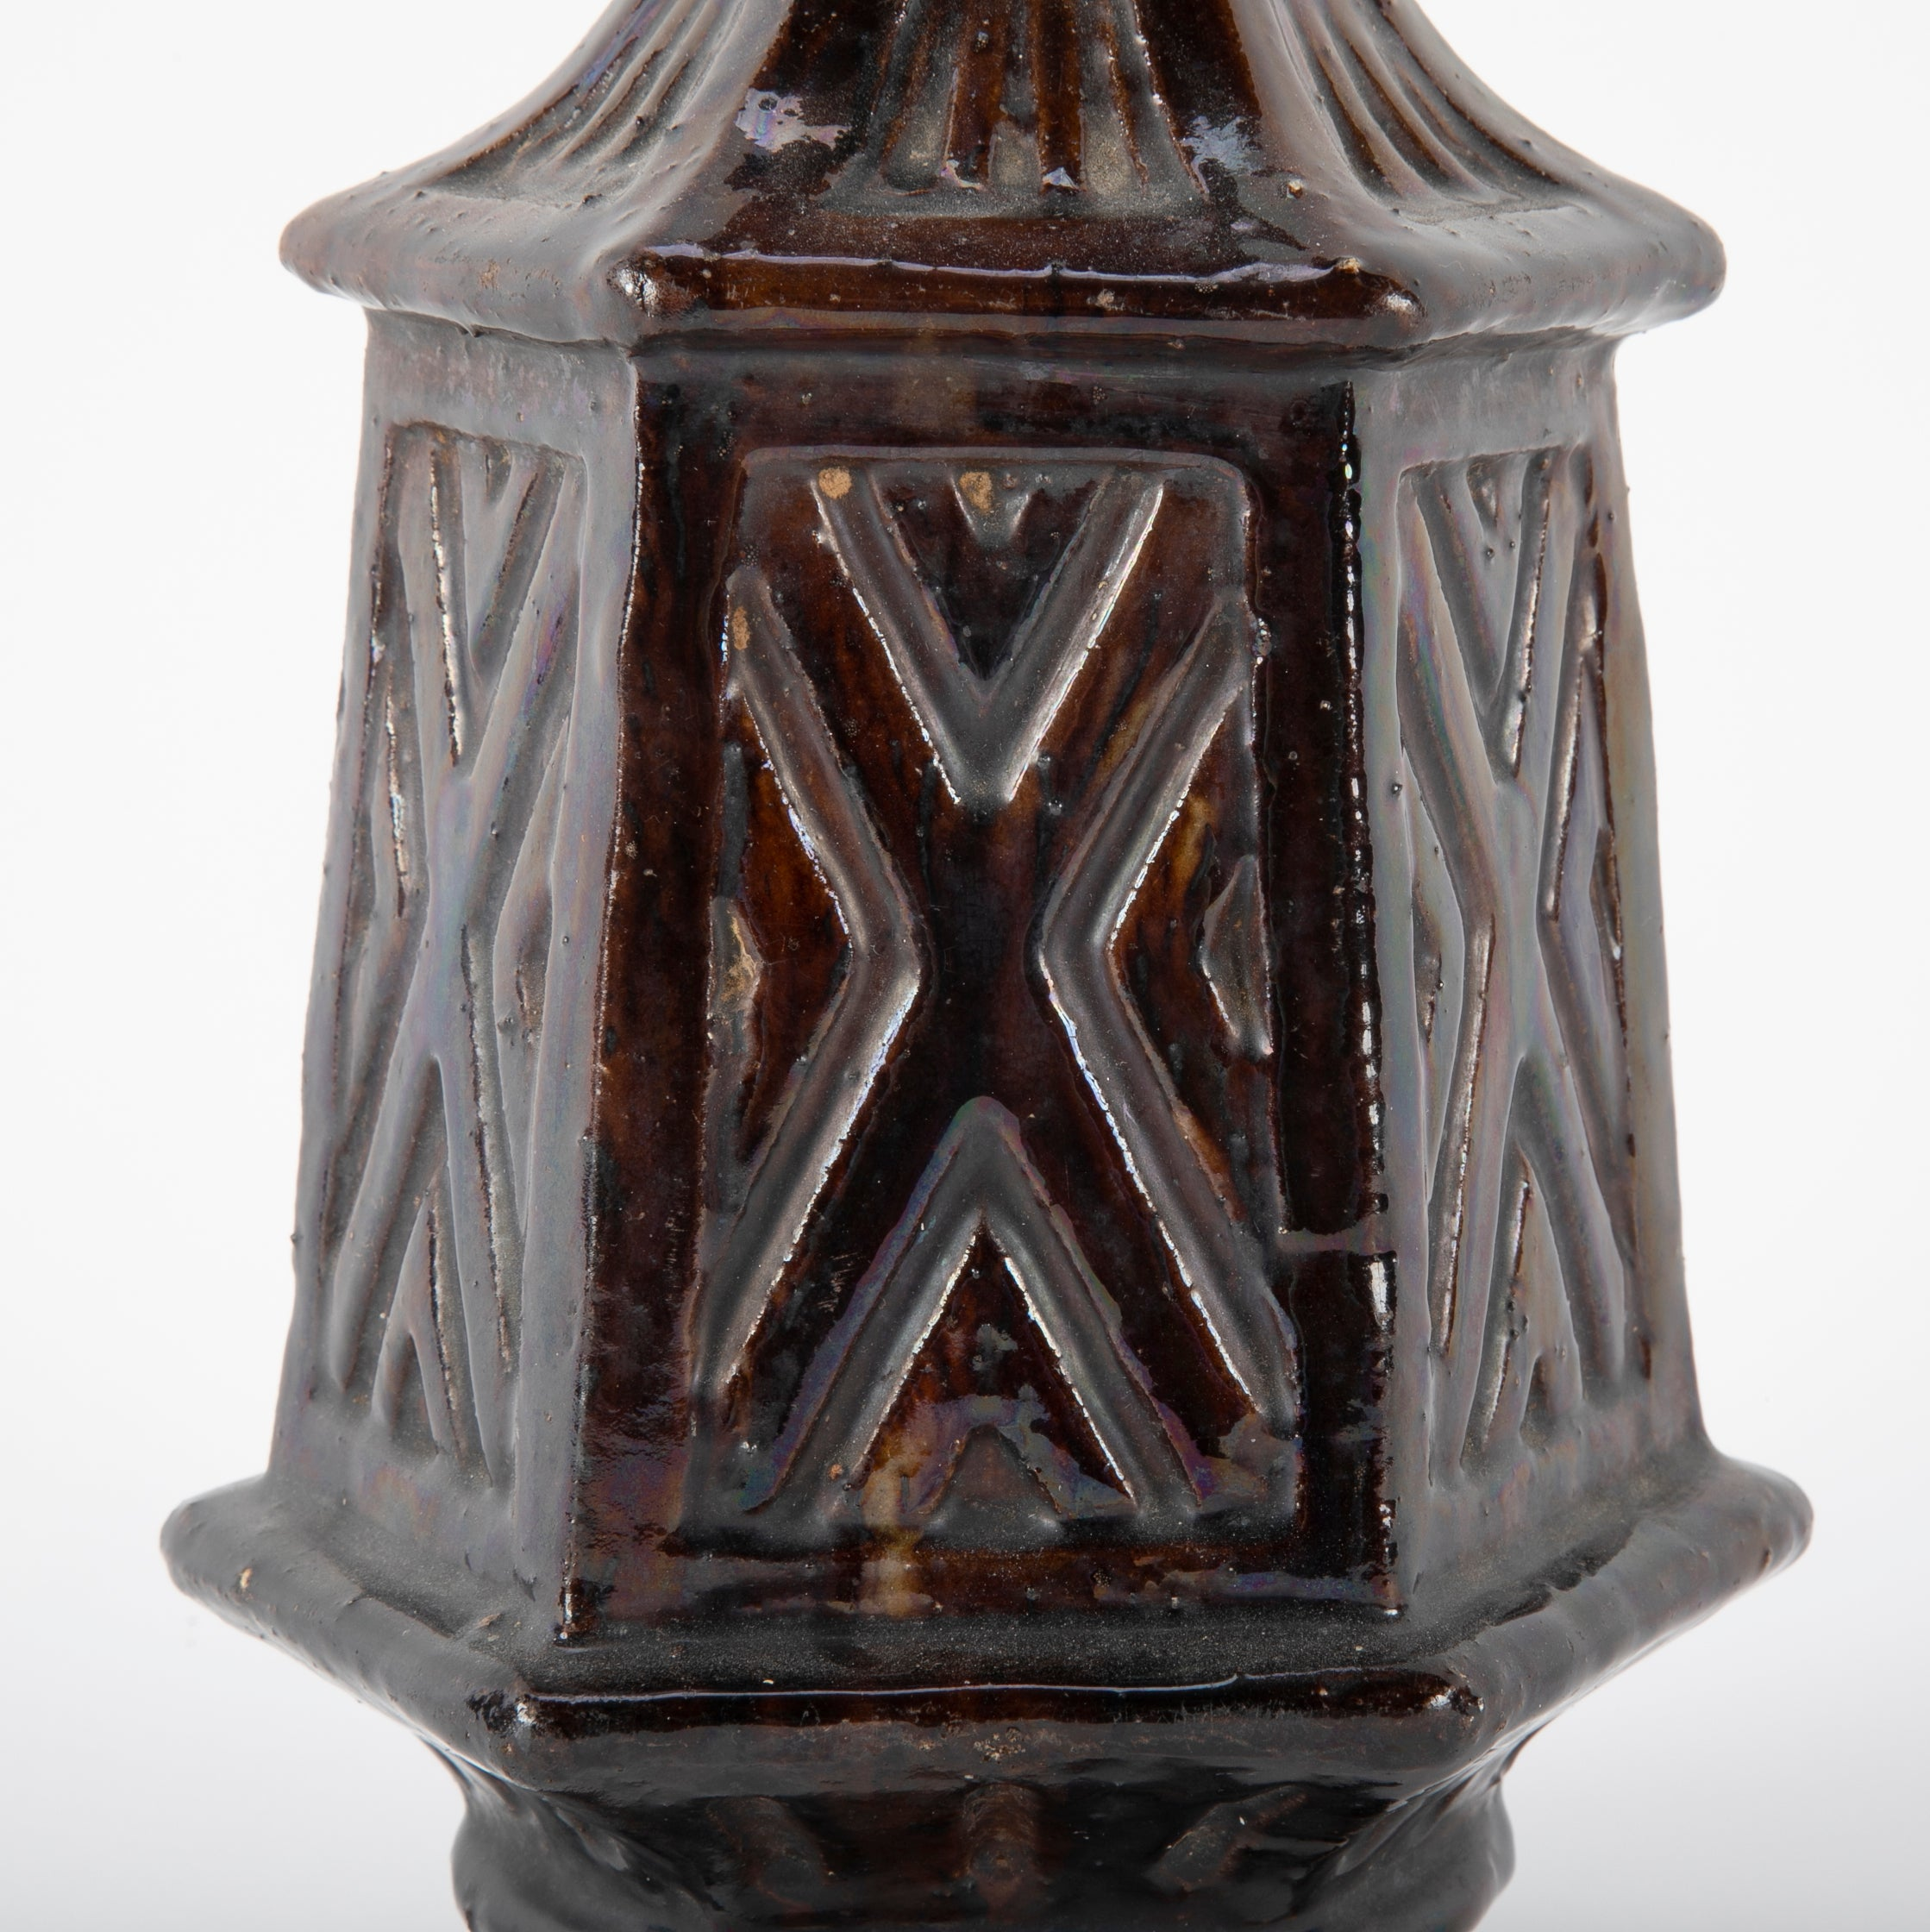 19th Century Turkish Glazed Jar of Unusual Geometric Form